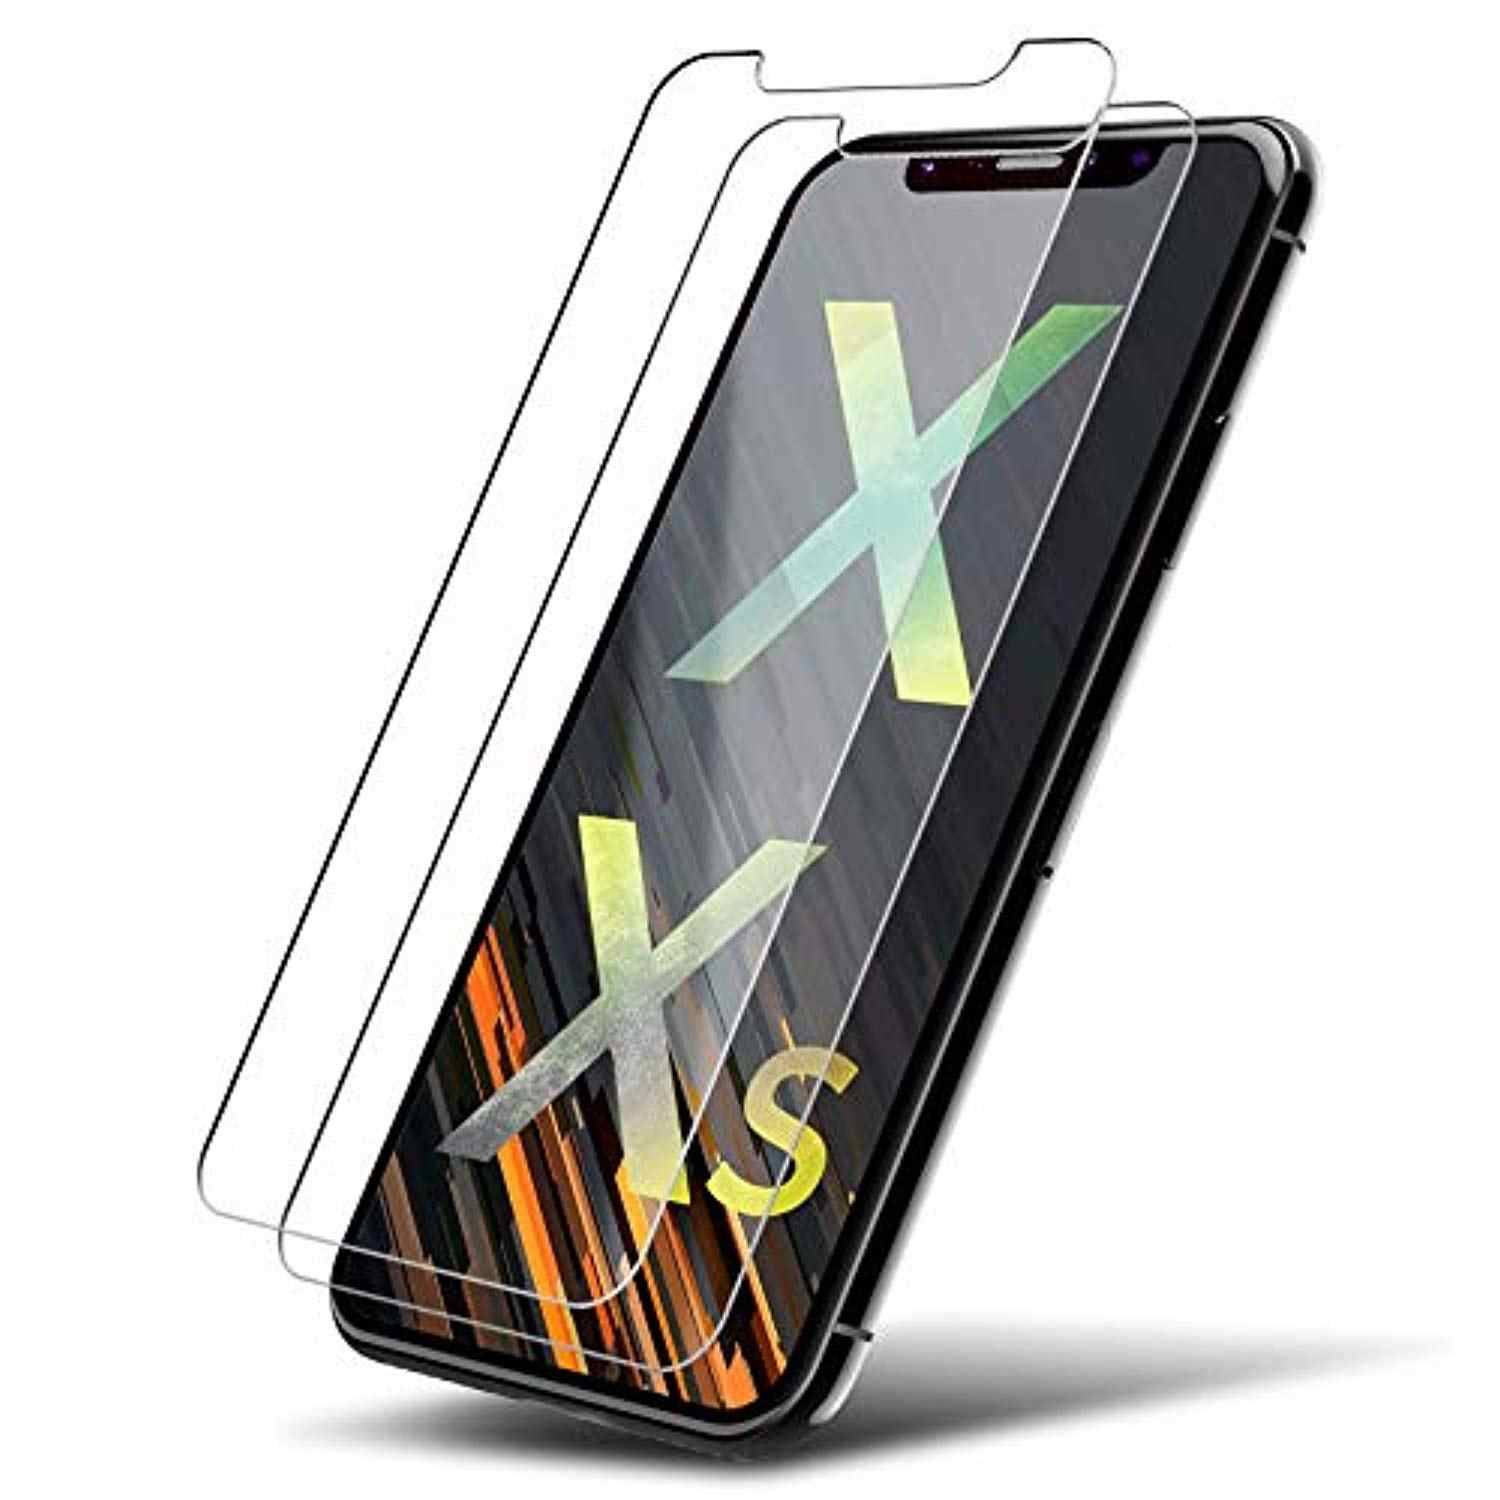 2pcs Tempered glass For iPhone XS Max X 7 8 6 6S Plus 5 5S 5C SE 4S 9H Screen protector Case Cover guard glass for iPhone X XR